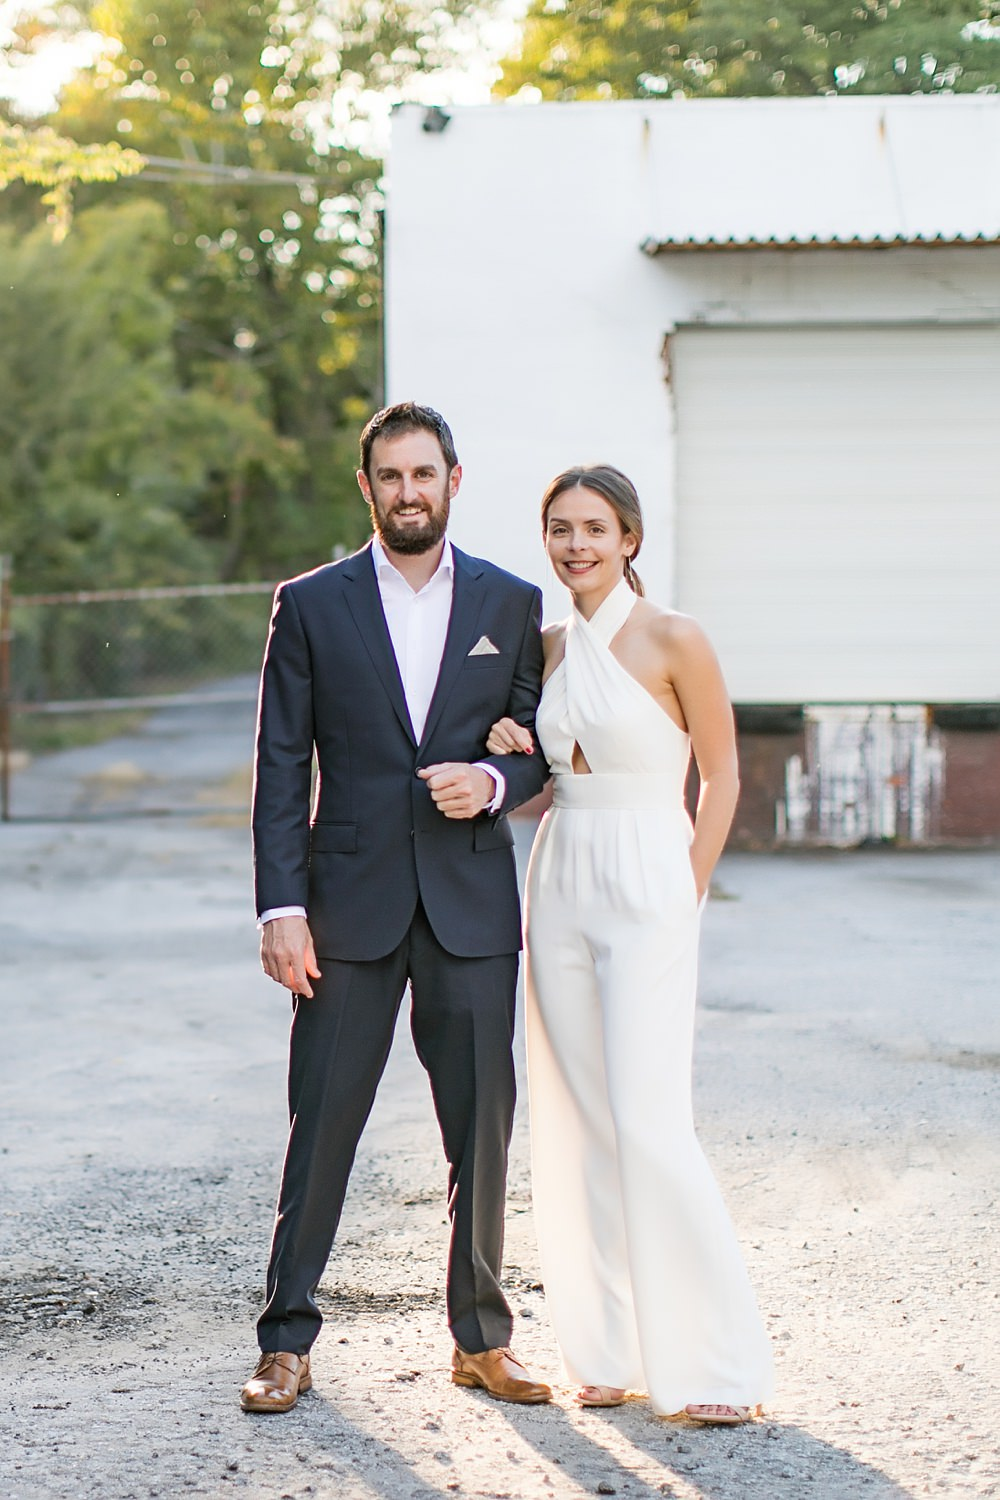 eventide brewery wedding : josie and bryan : vue photography0015